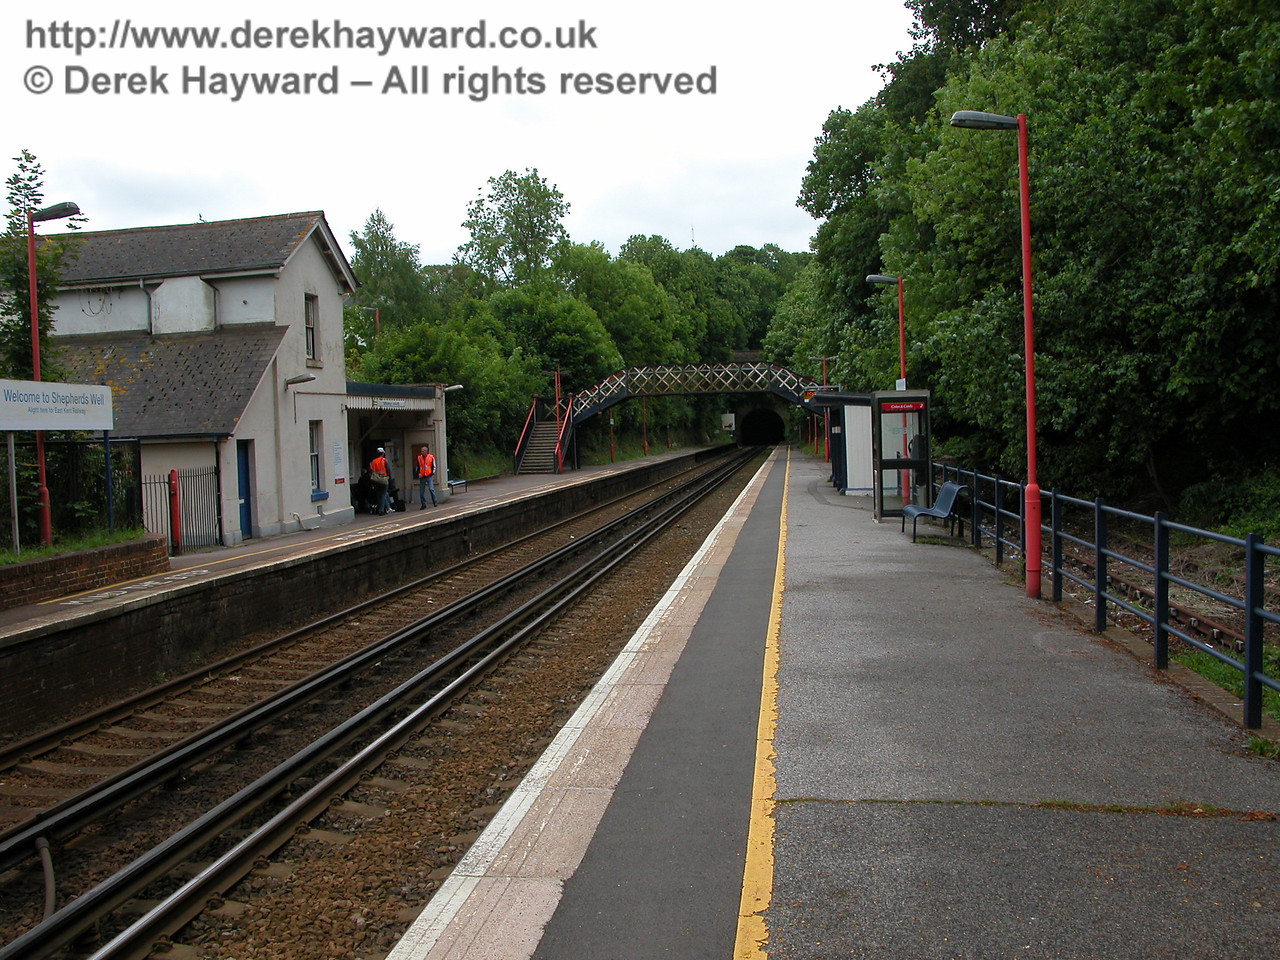 10 years earlier, Shepherds Well (or Shepherdswell) Station, Network Rail, looking south on 06.06.2005.  Note the running in sign on Platform 2 which says Welcome to Shepherds Well.  At the end of Platform 2 is an old semaphore signal with a white sighting panel behind it, and note the most unusual sight of a telephone kiosk sited on Platform 1.  Rural telephone kiosks would normally be outside railway property.